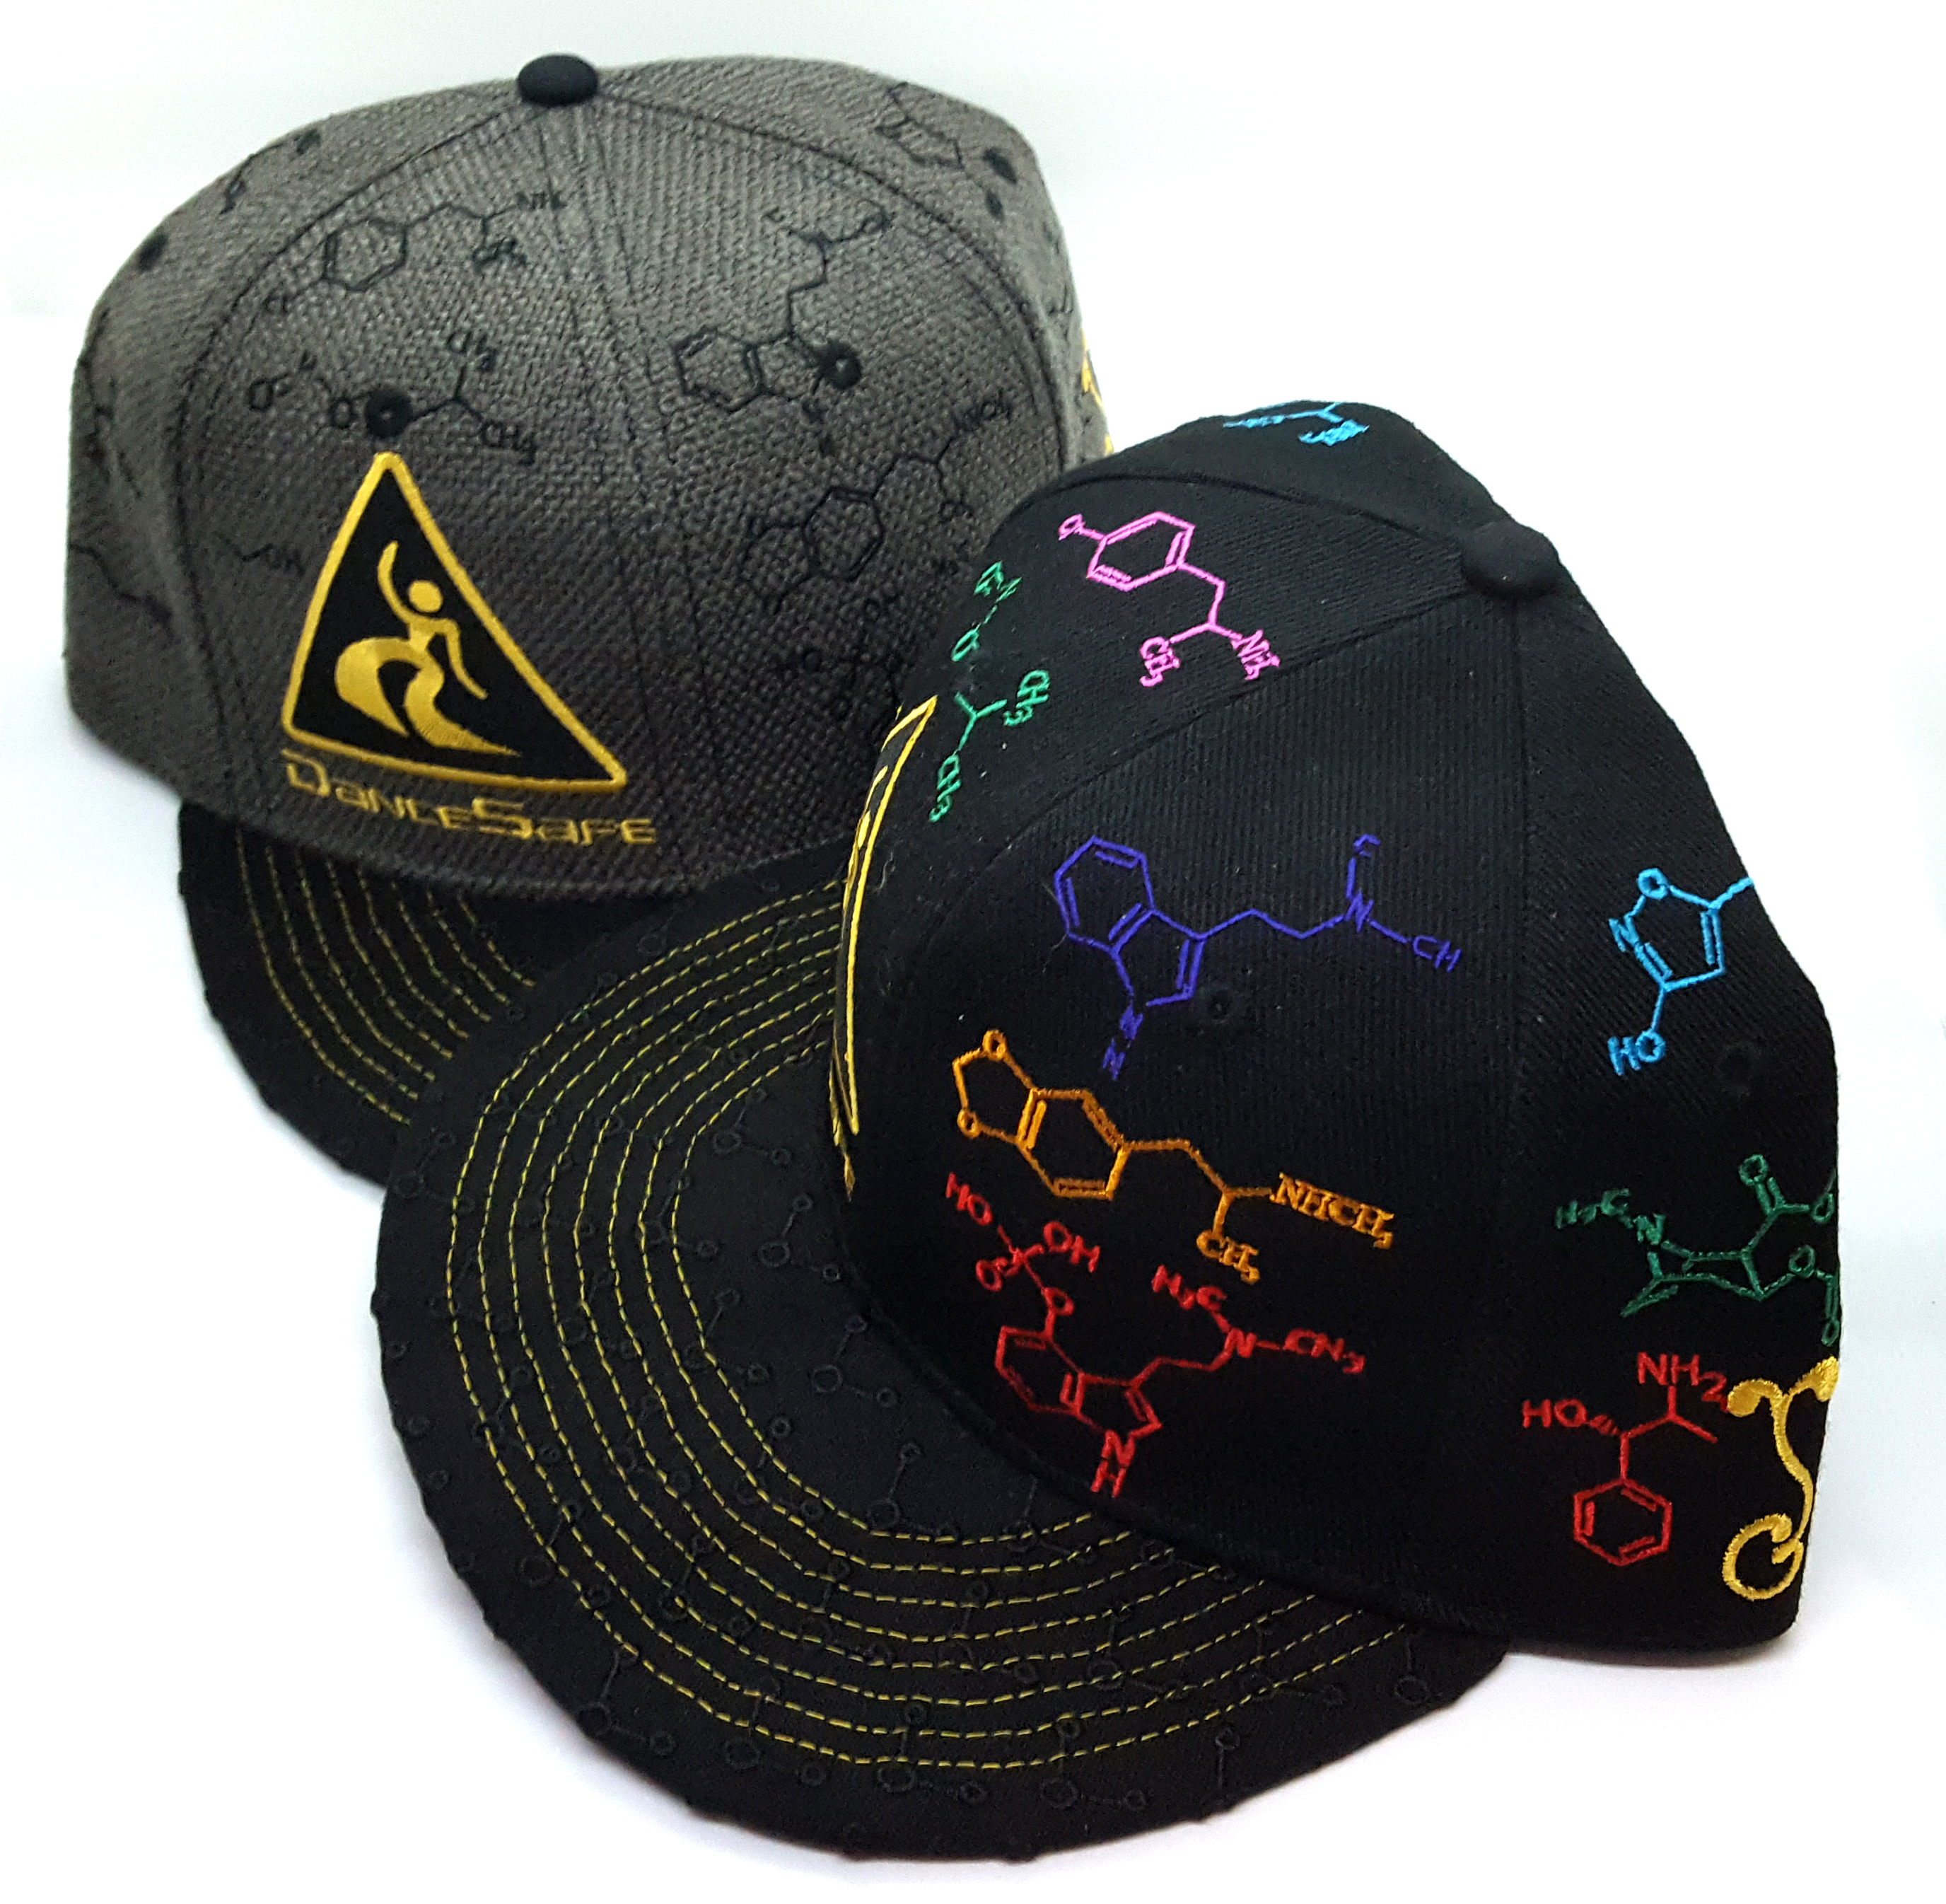 fd397562a6d Grassroots California (GRC) Molecule Hat – Black and Grey Variants – Fitted